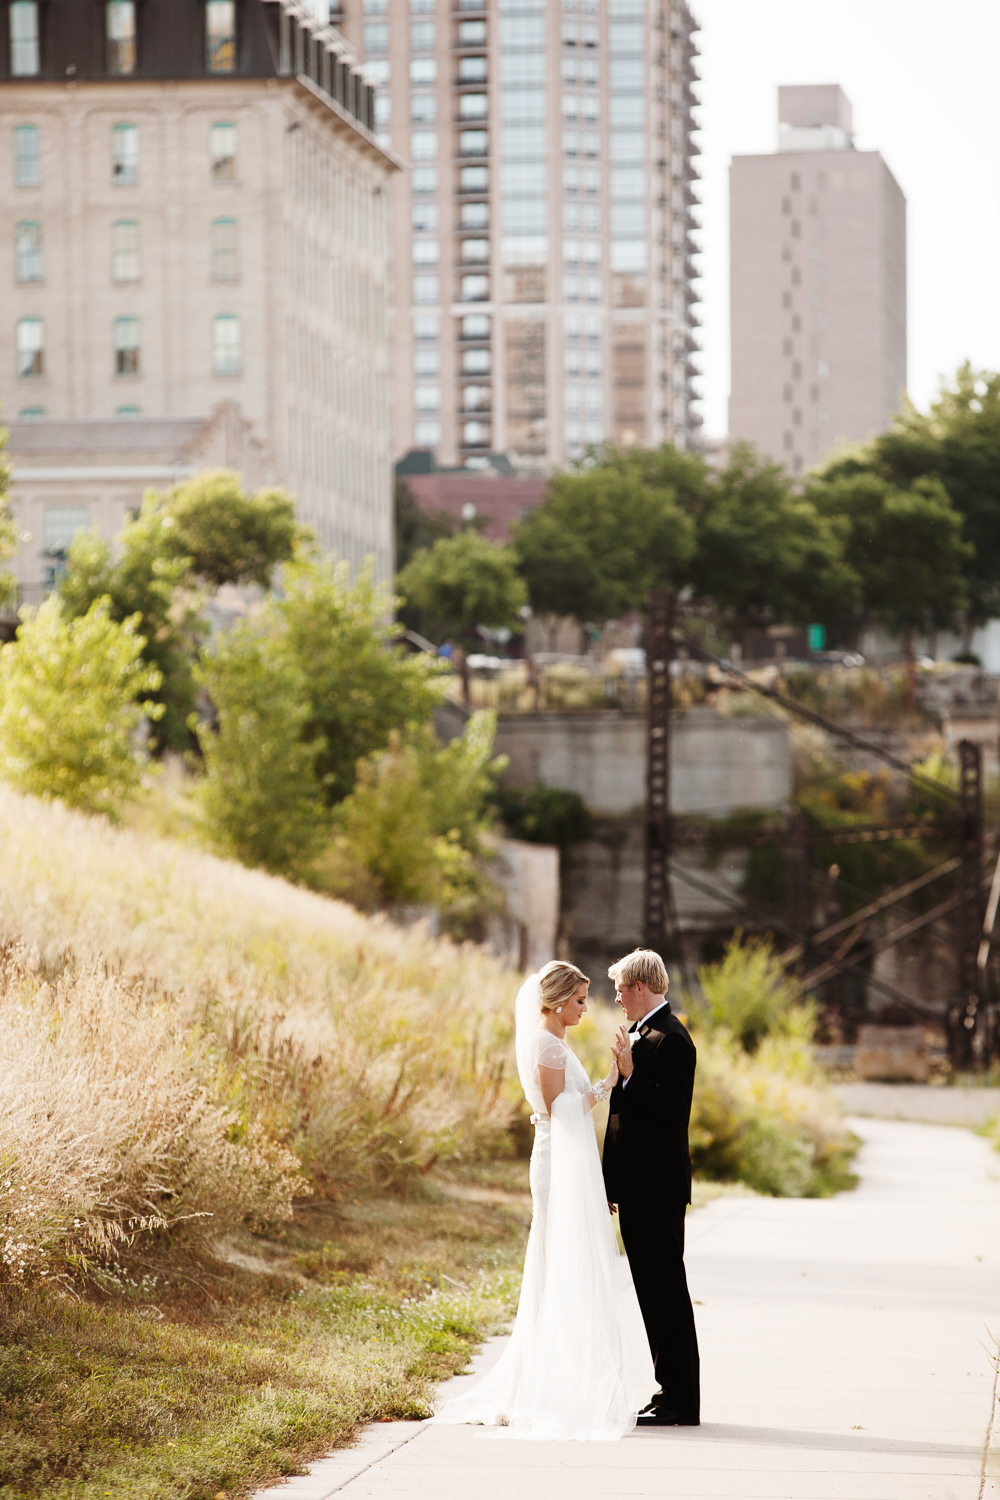 clewell minneapolis wedding photographer-312992142218495.jpg